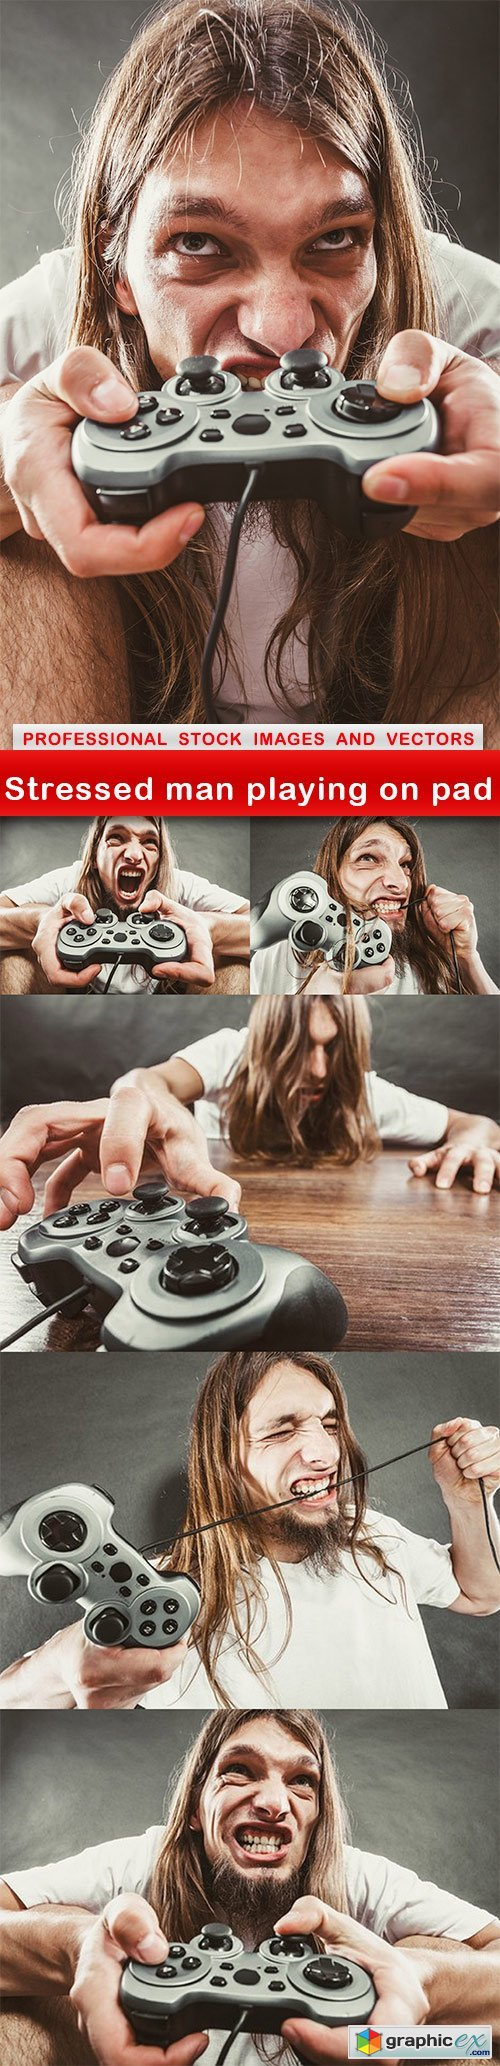 Stressed man playing on pad - 6 UHQ JPEG